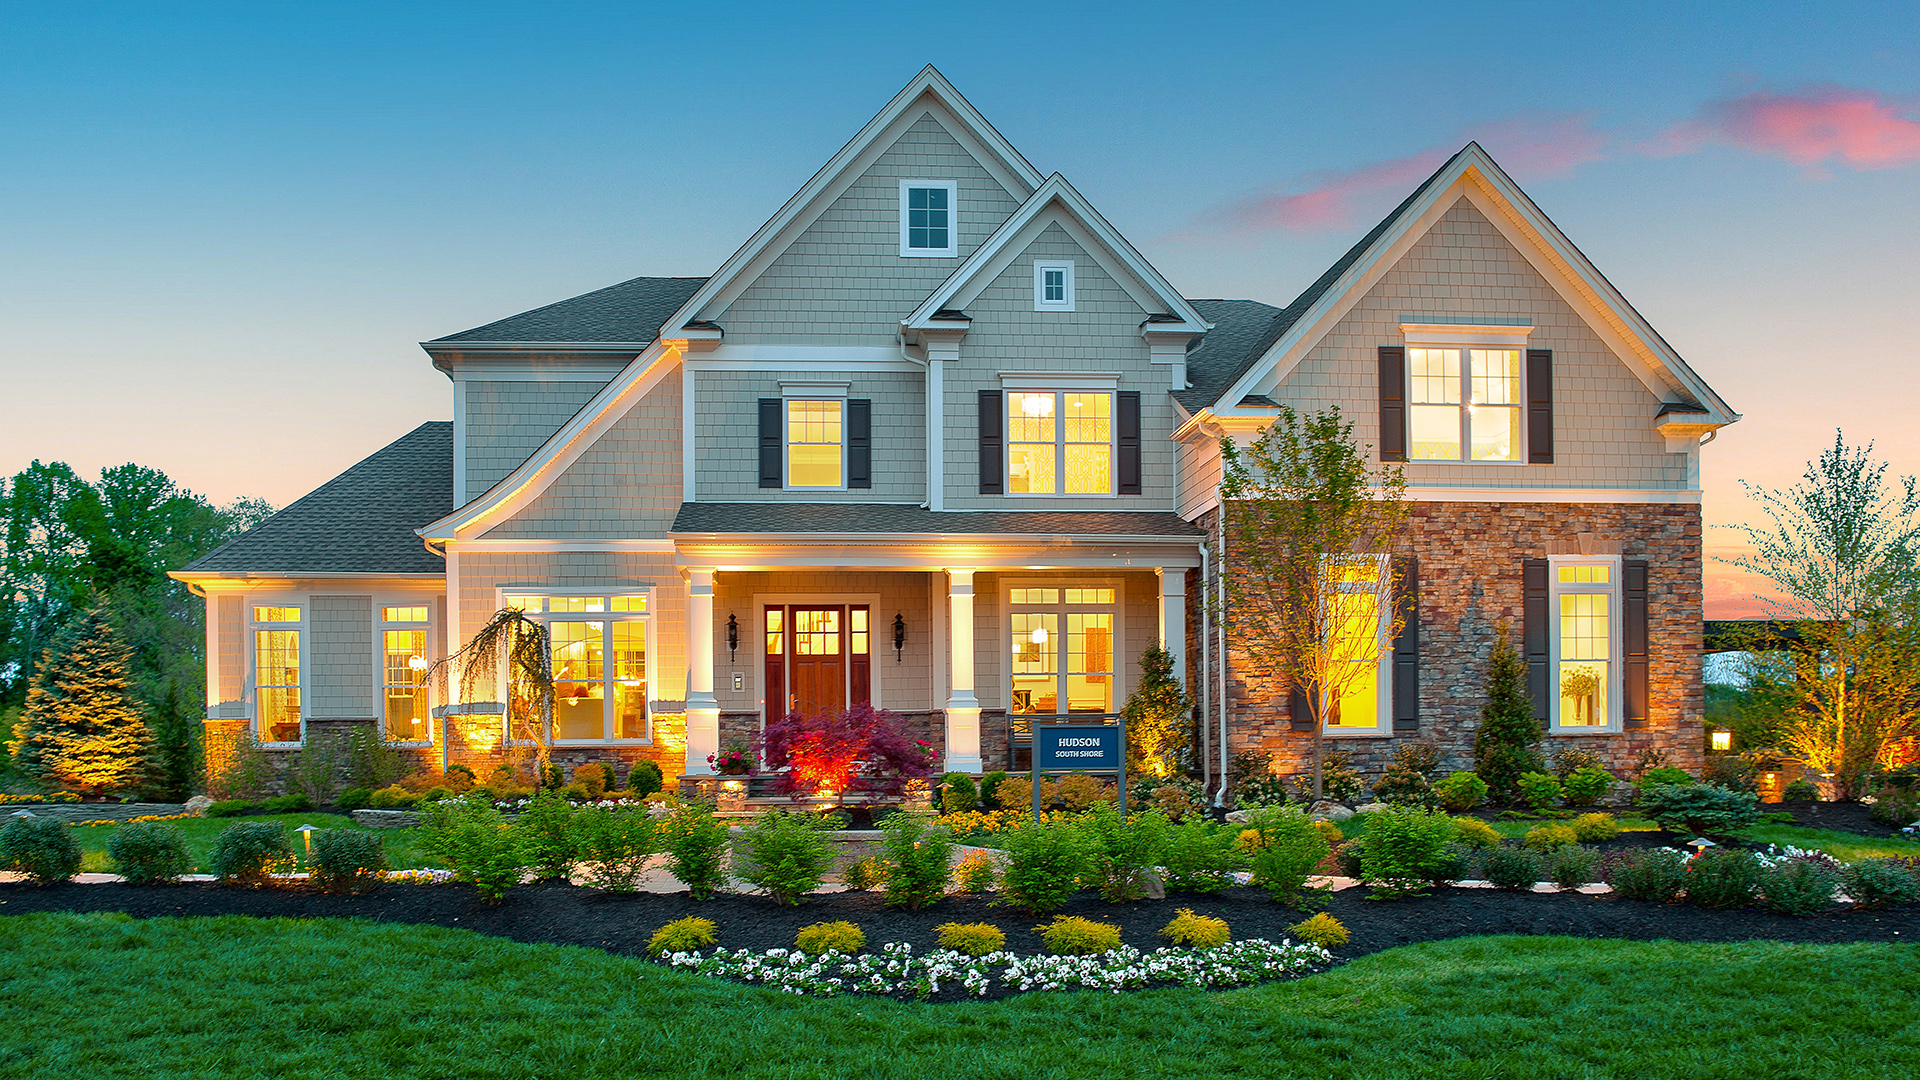 New Luxury Homes For Sale In Lincroft Nj Estates At